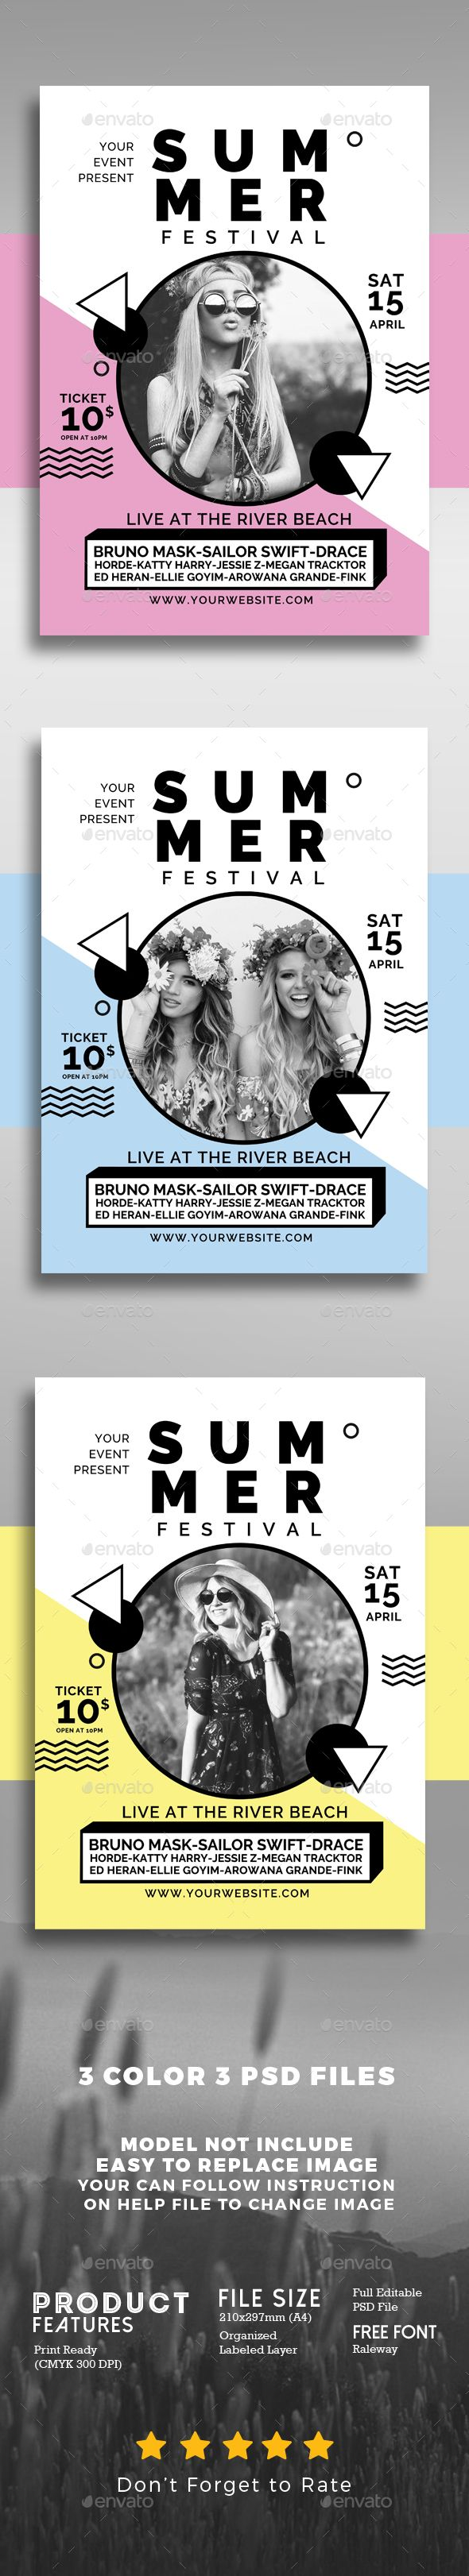 Summer Music Festival - Events Flyers - Modern flyer template.